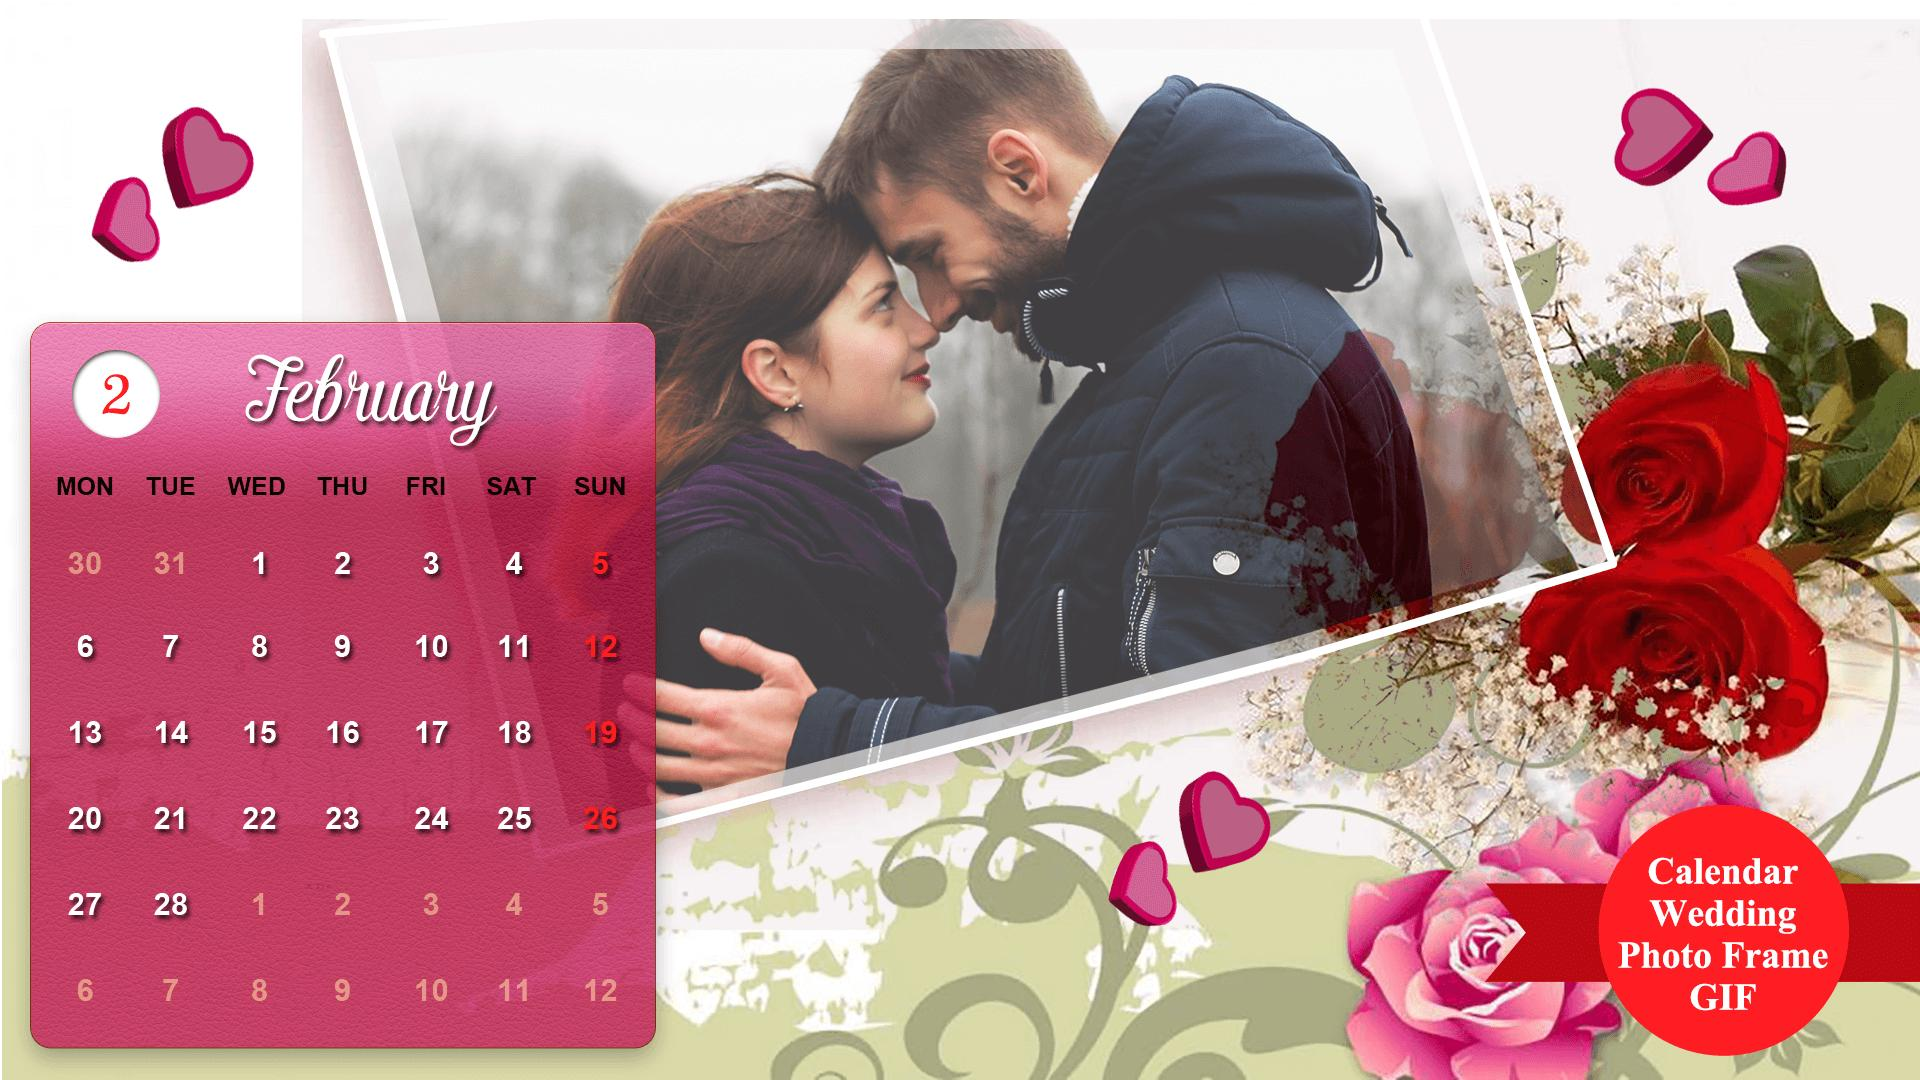 Wedding Gif Calender Frames For Android Apk Download